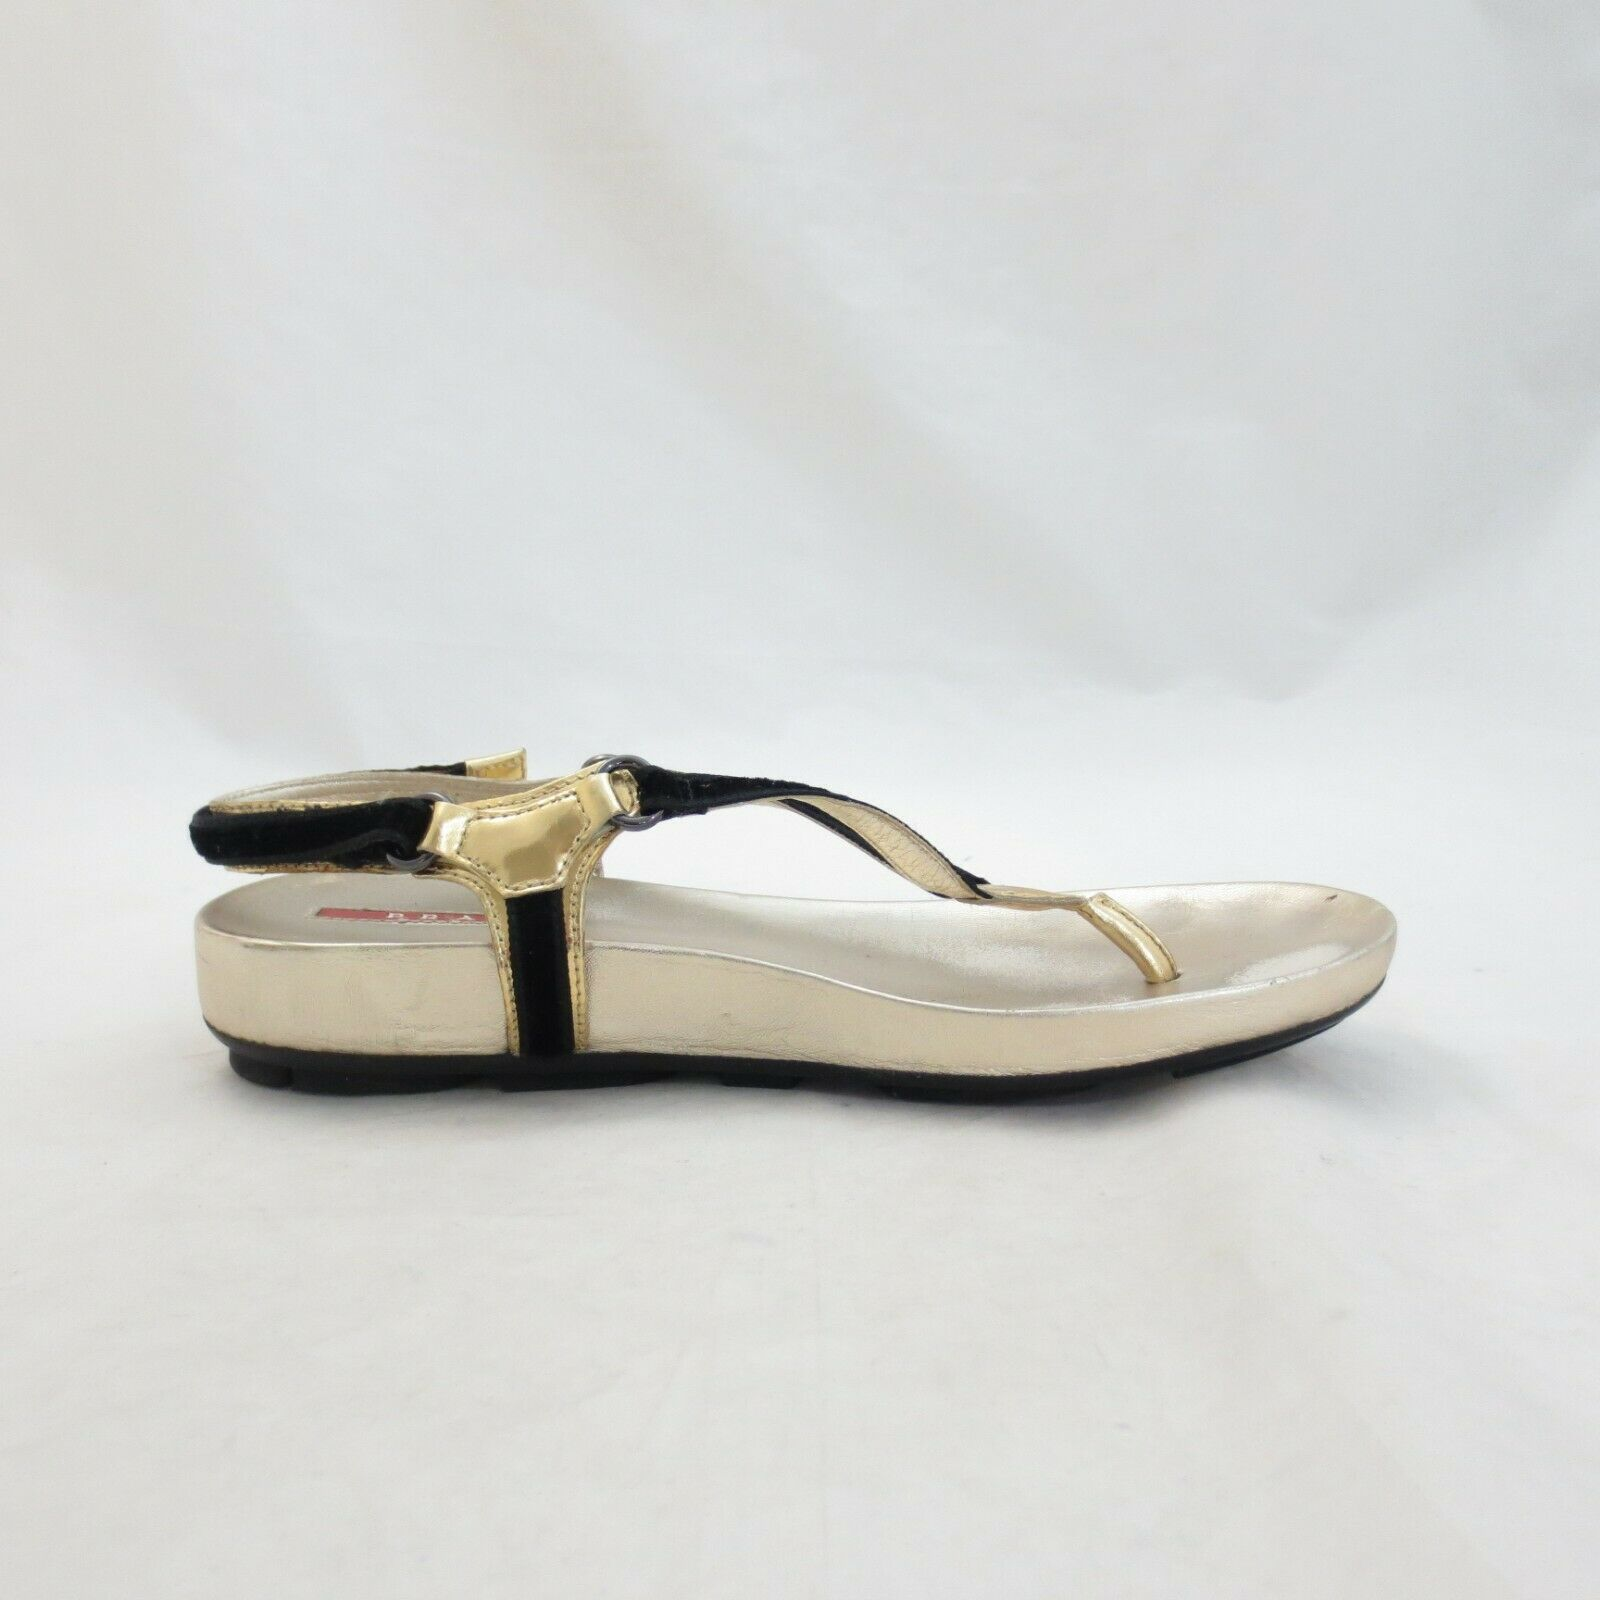 Primary image for 38 / 8 - Prada Black Velvet & Metallic Gold Leather Thong Sandals 1107TZ